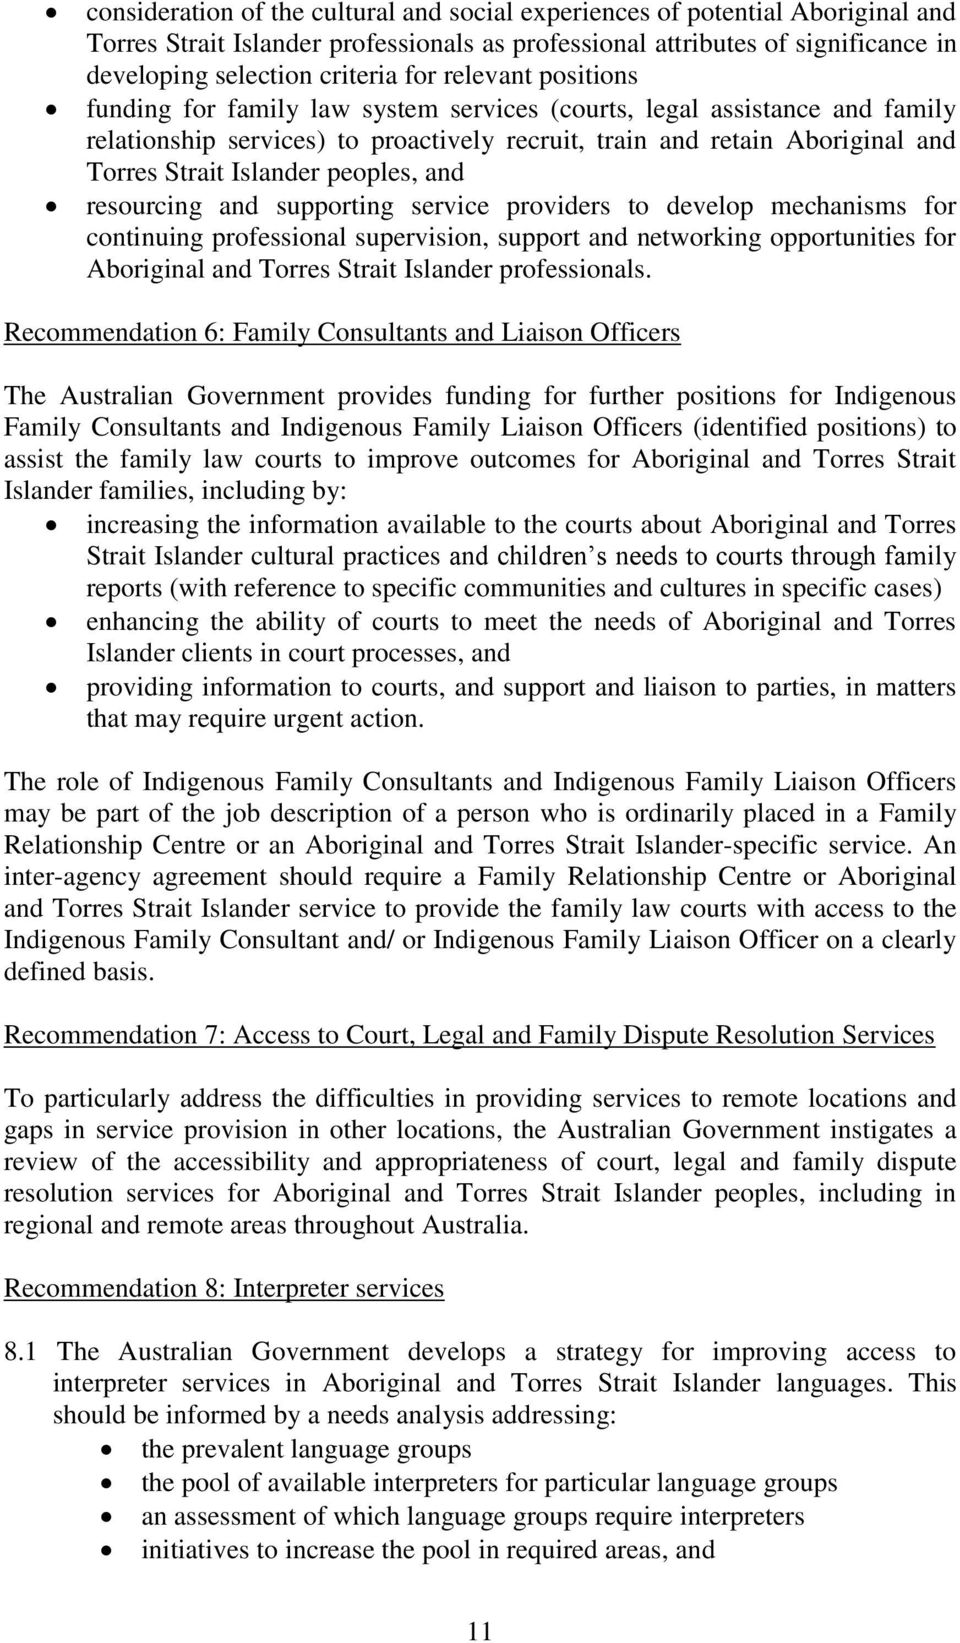 peoples, and resourcing and supporting service providers to develop mechanisms for continuing professional supervision, support and networking opportunities for Aboriginal and Torres Strait Islander